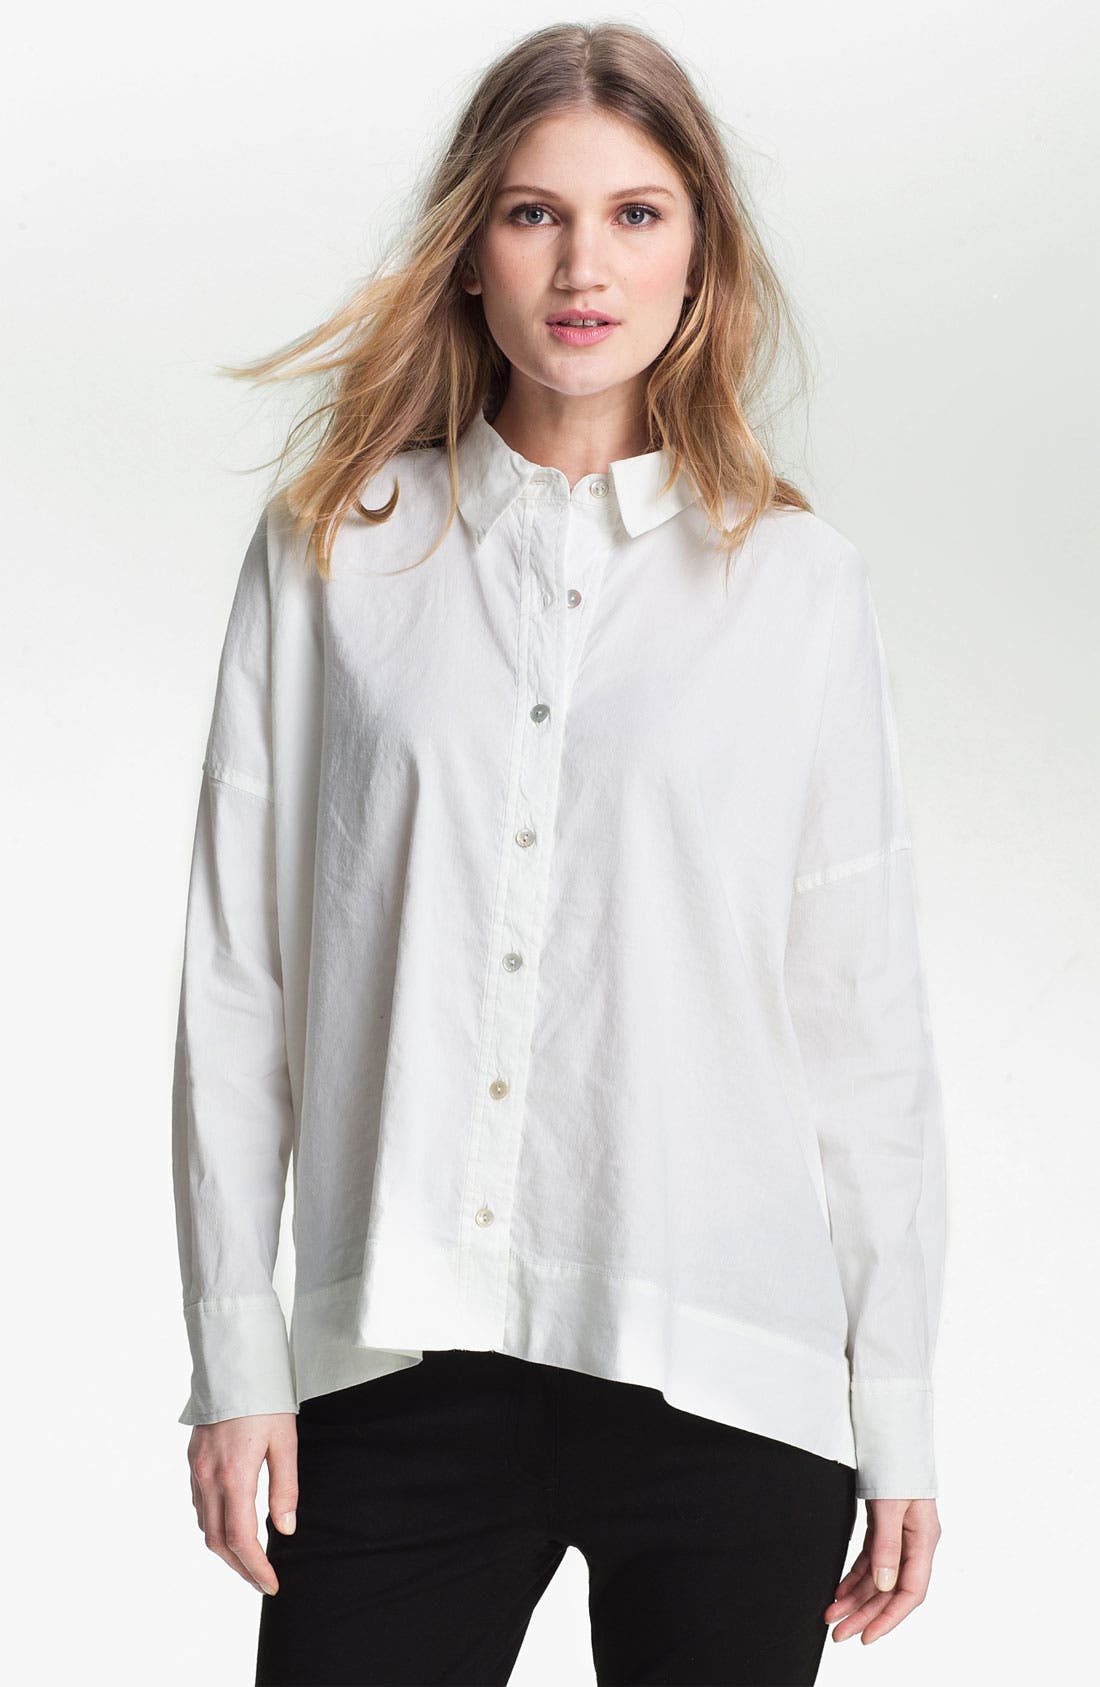 Alternate Image 1 Selected - Eileen Fisher Stretch Linen Blend Shirt